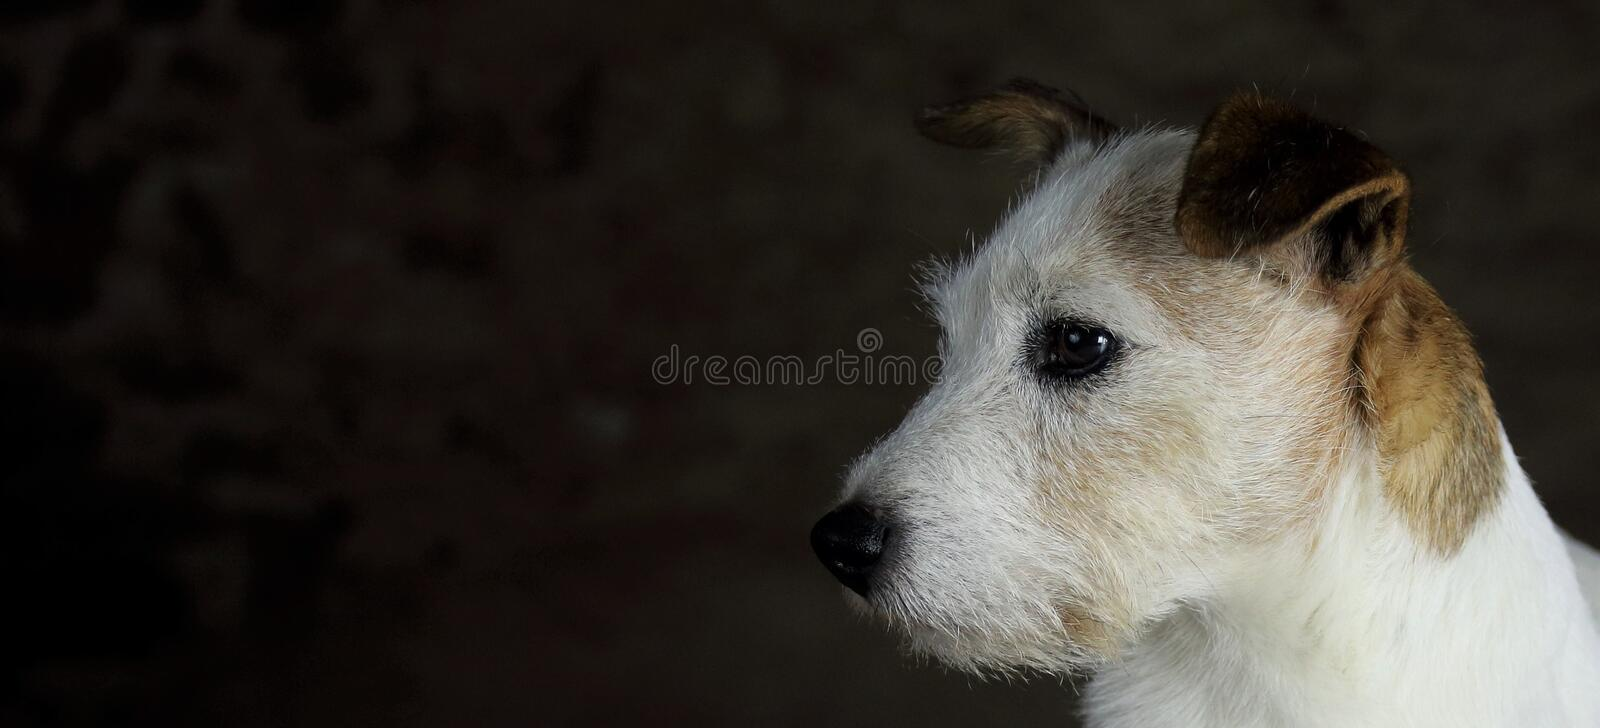 Head of white and brown Jack Russell dog with copy space royalty free stock photos